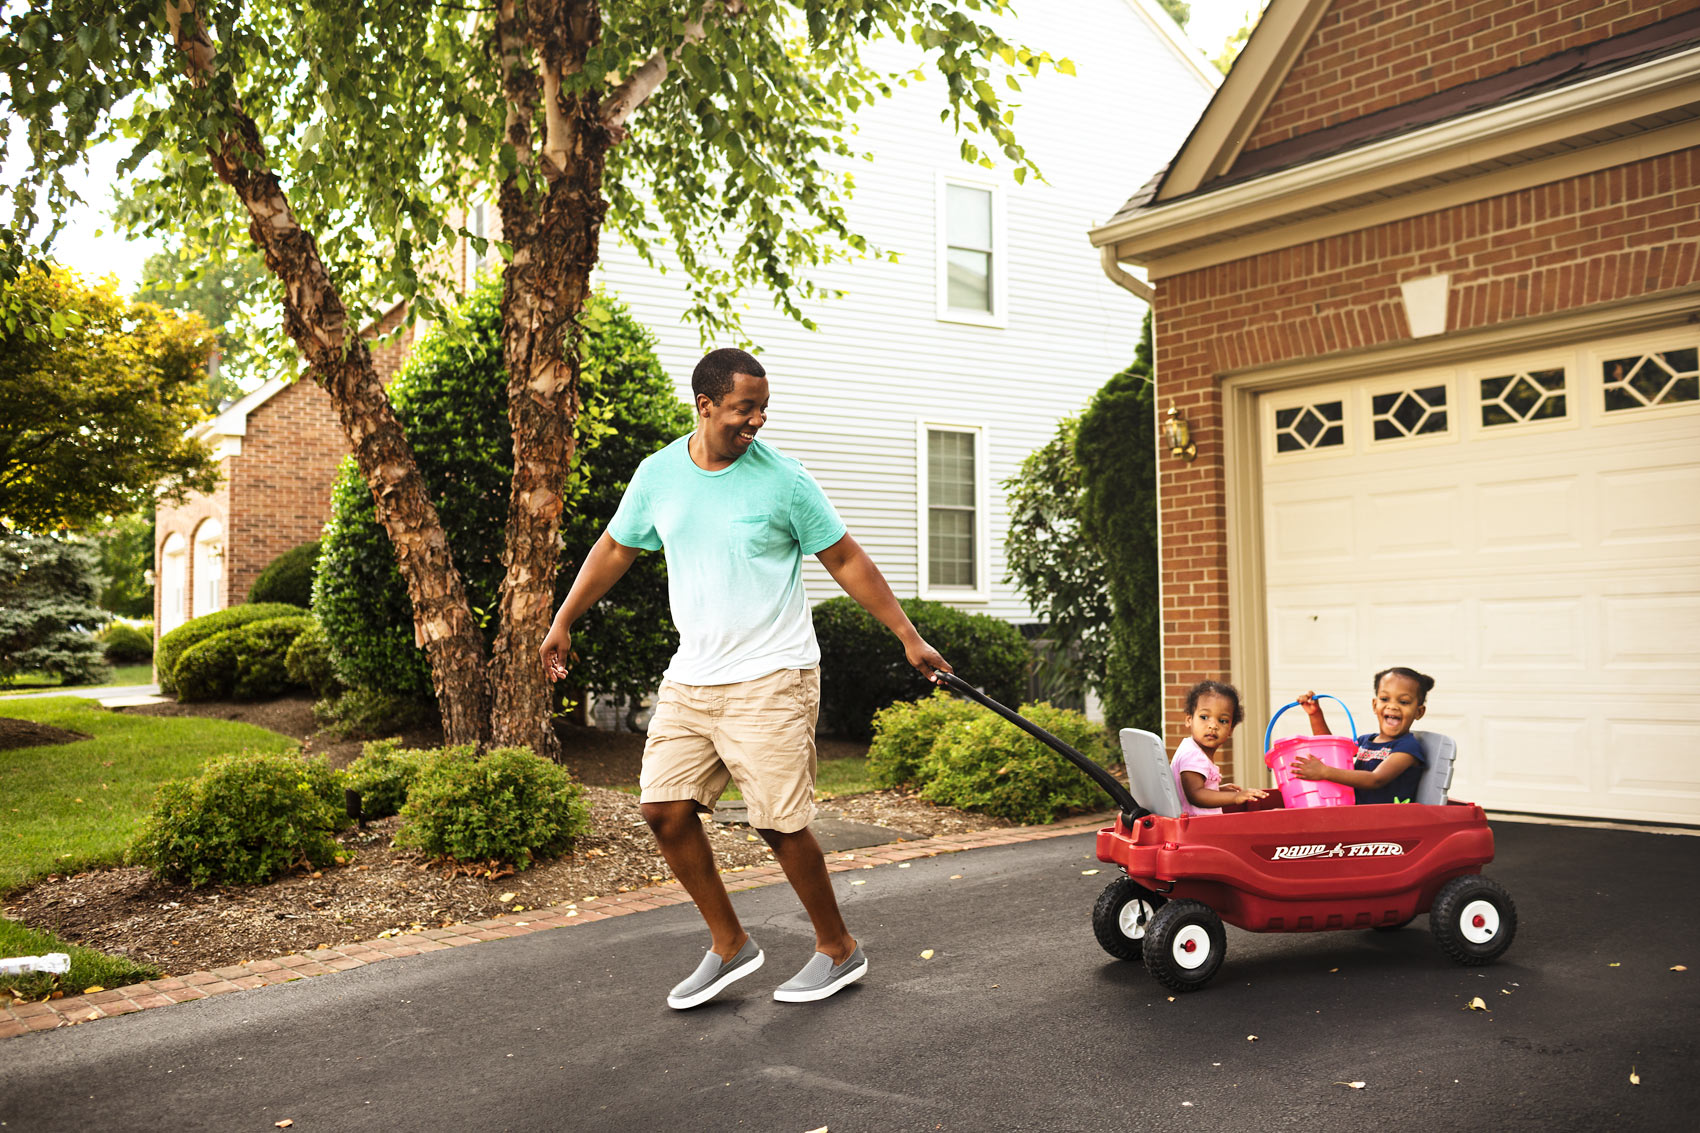 father pulling daughters in red radio flyer wagon in driveway , washington dc commercial photography